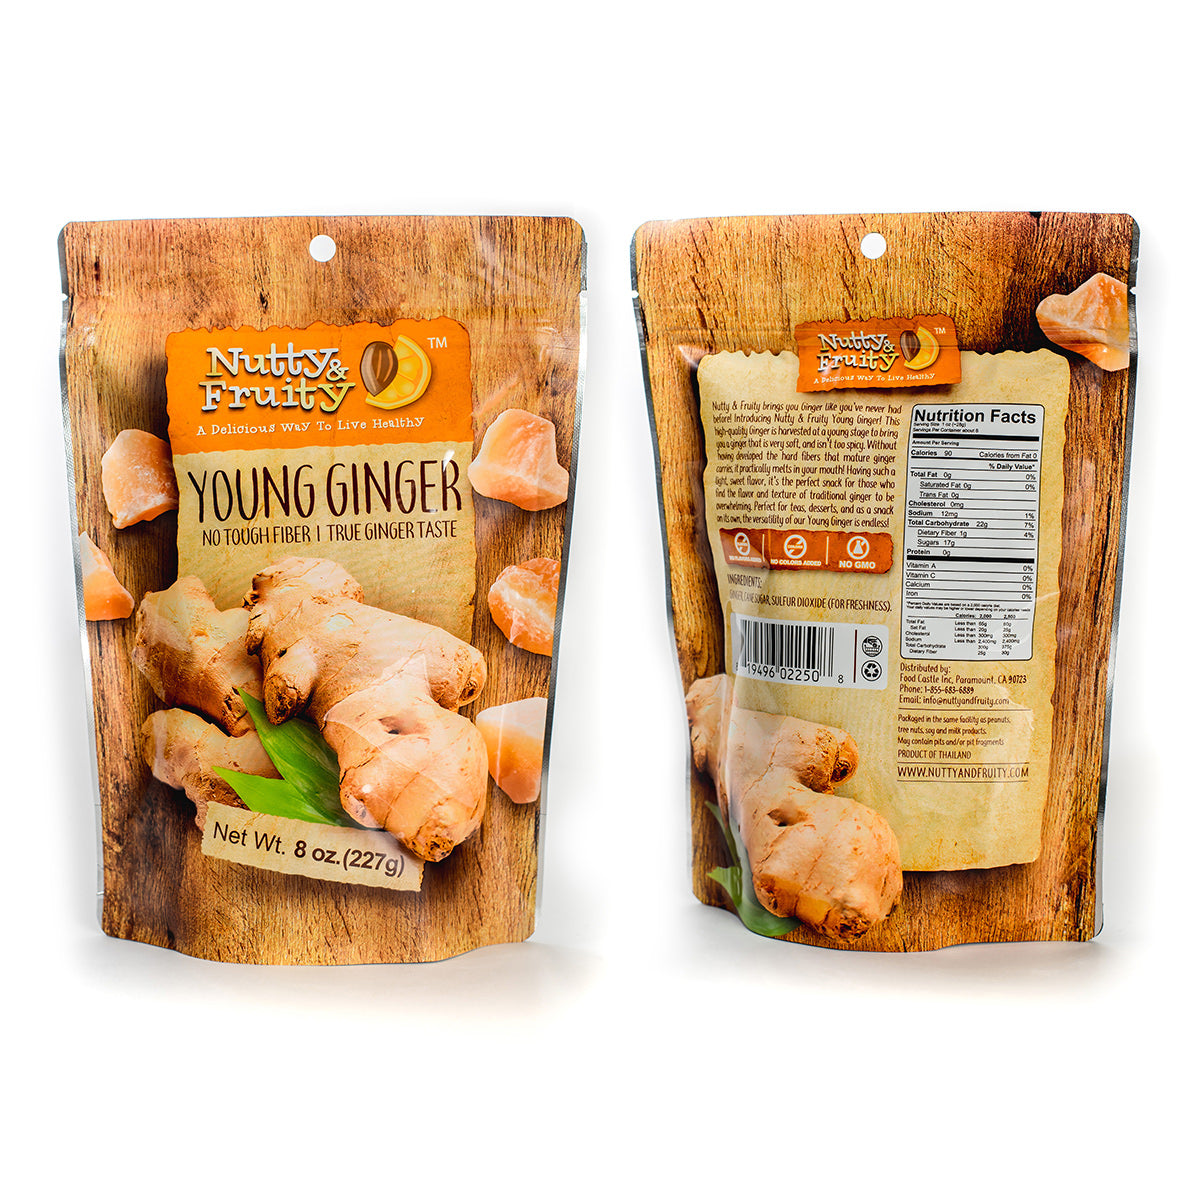 Dried Young Ginger Bites